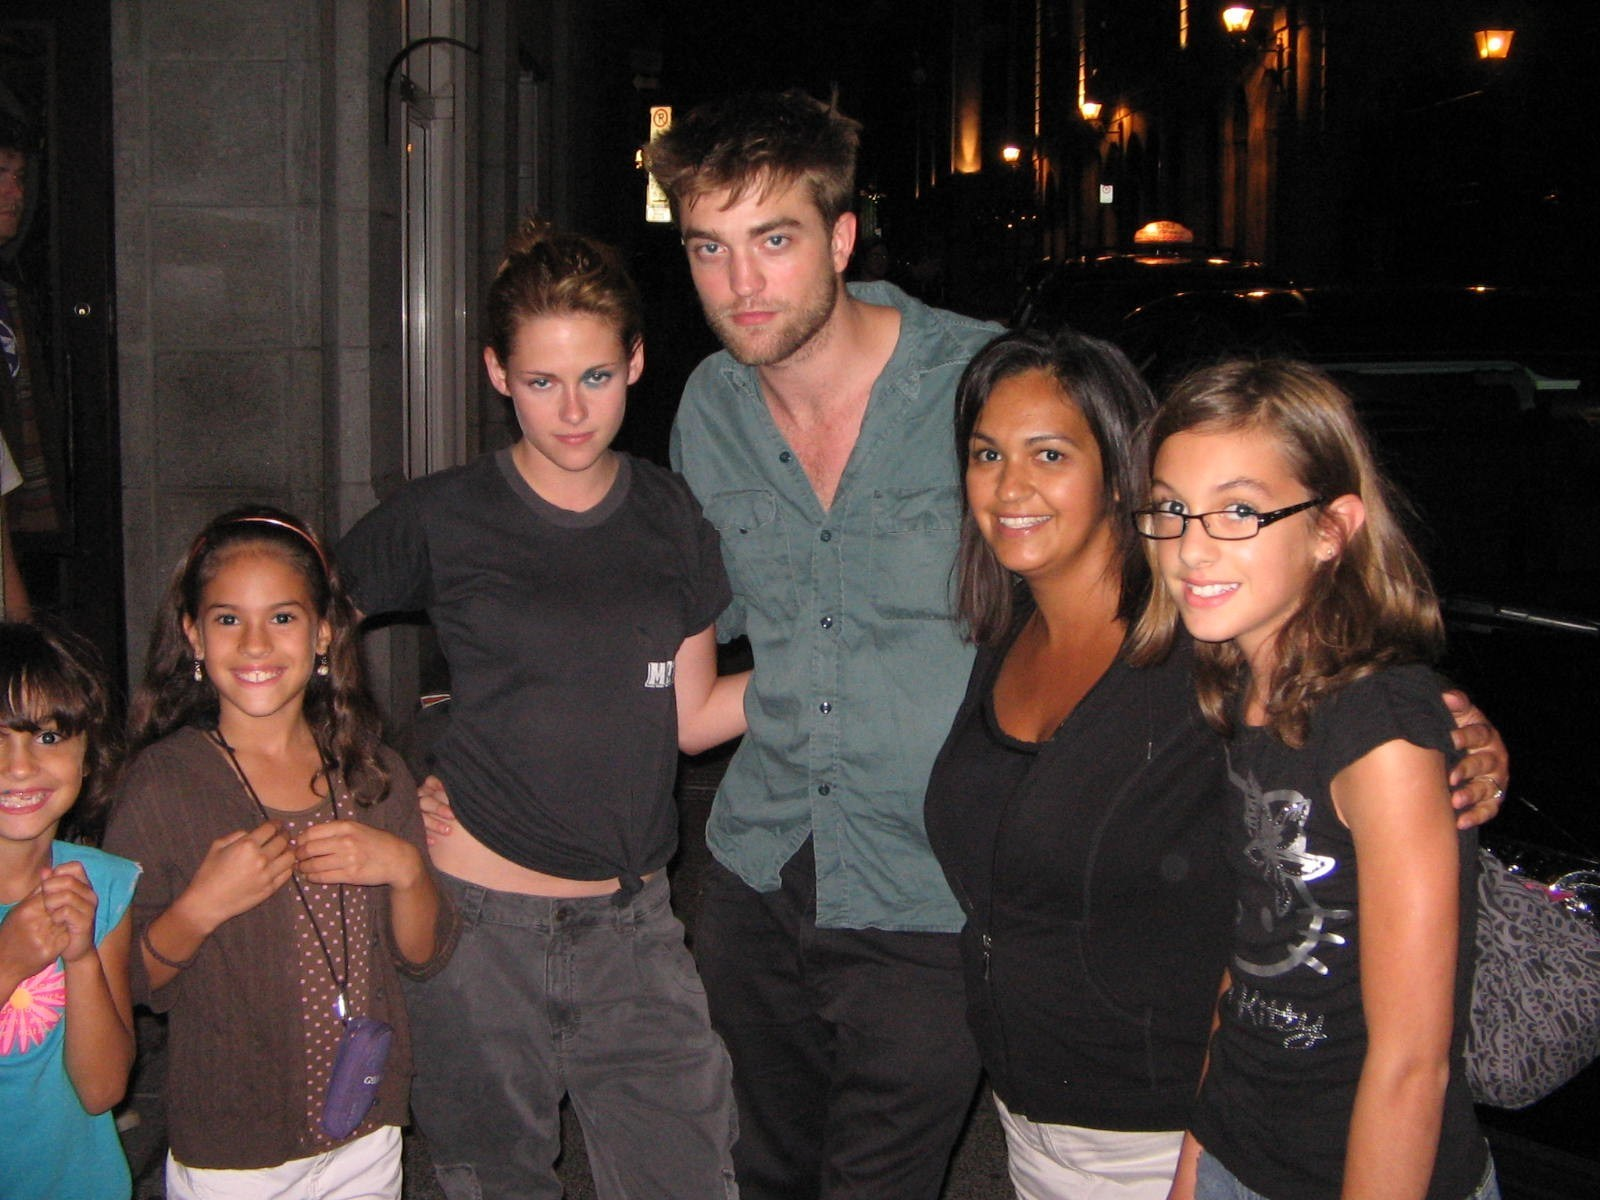 New Rob and Kristen Picture with peminat-peminat in Montreal